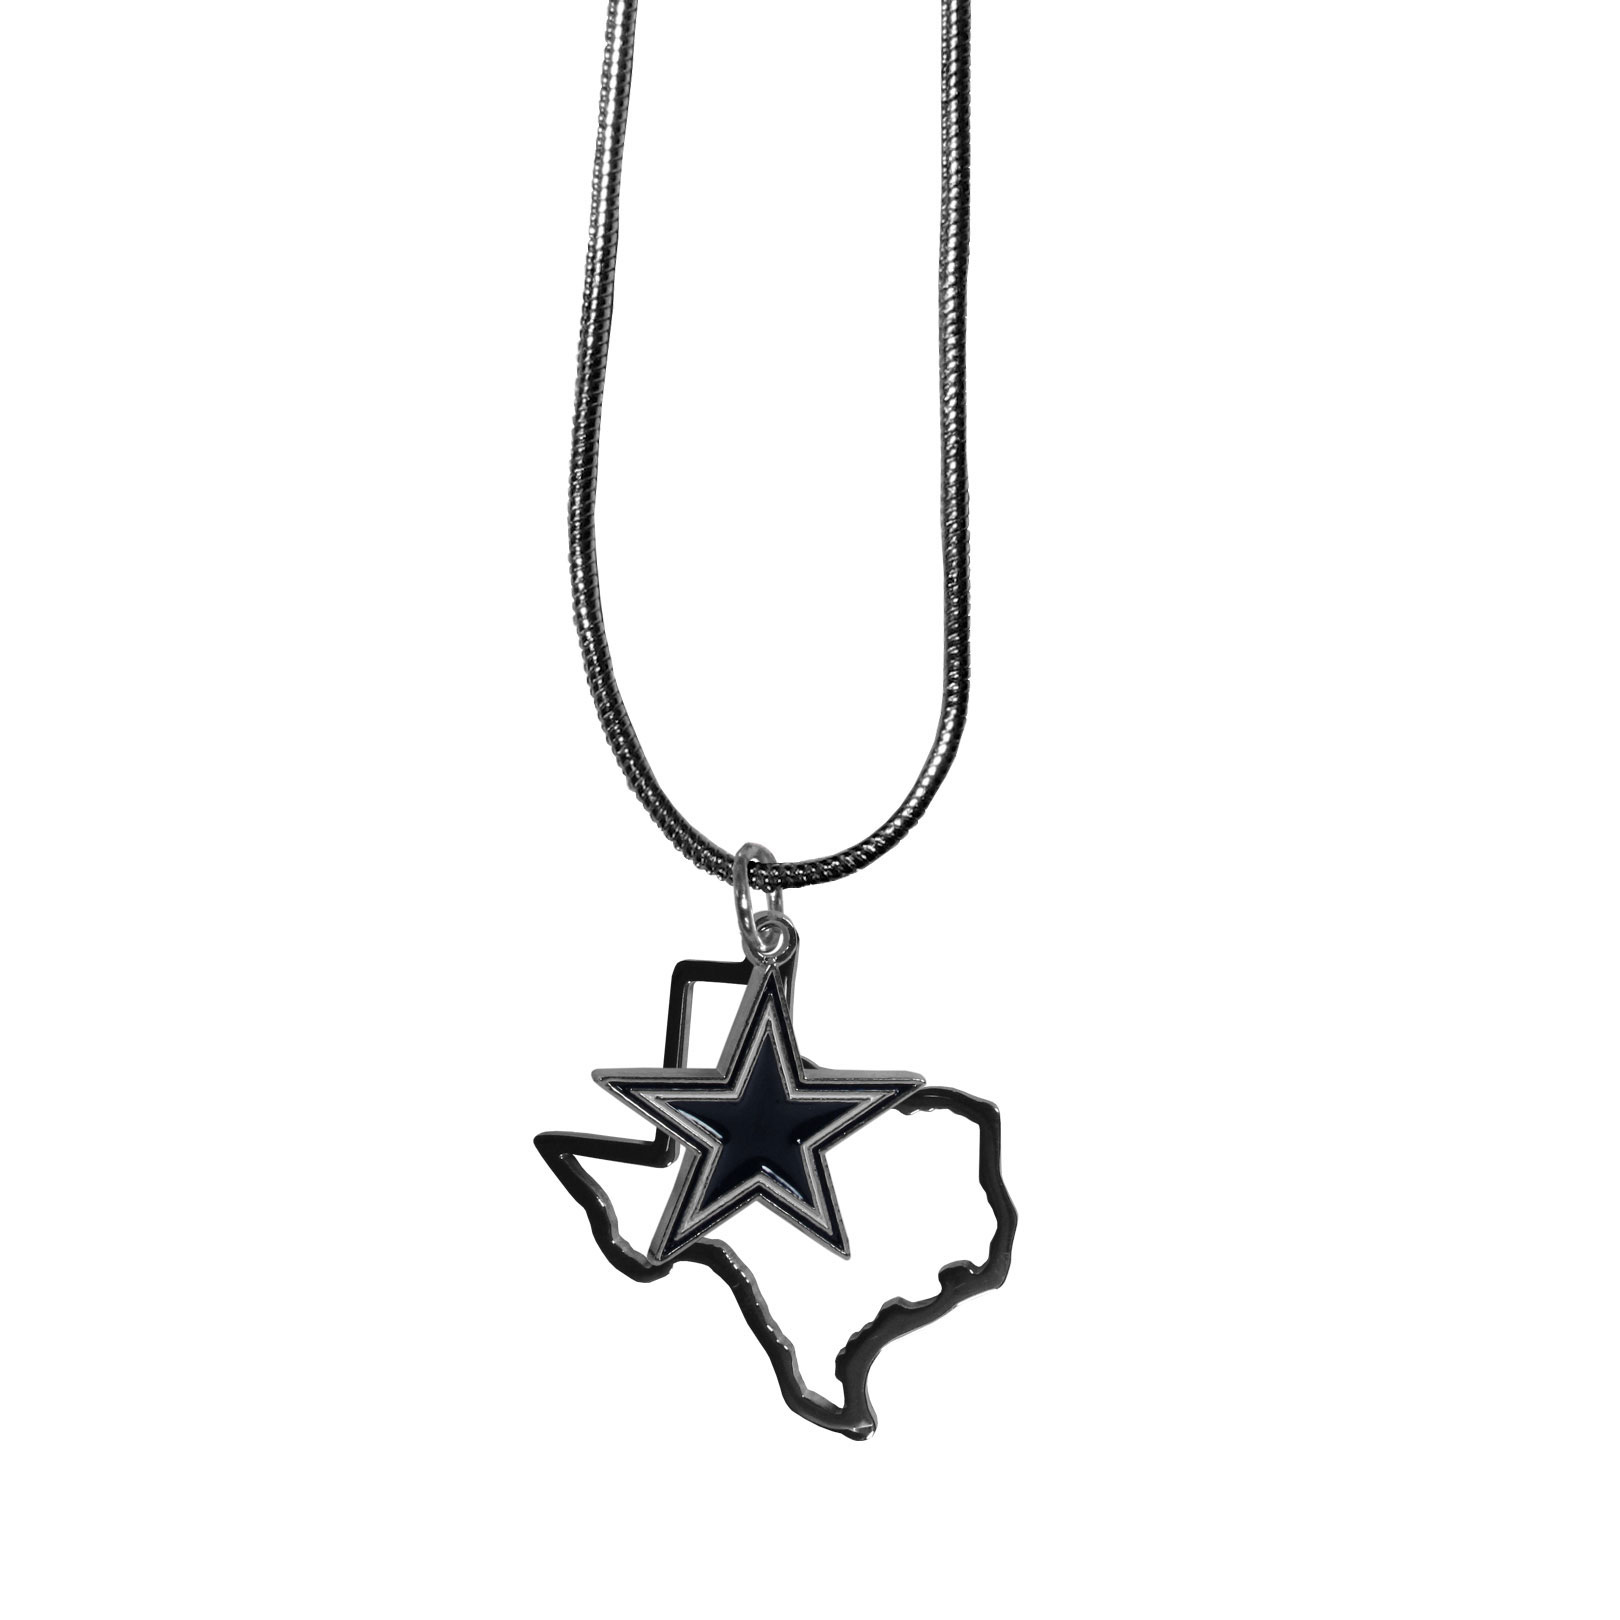 Dallas Cowboys State Charm Necklace - Get in on the trend! State themes are a trend that just keeps getting more popular and these necklaces take the state style and give it a sporty twist with a Dallas Cowboys added to the state outline charm. The come on a snake chain that is 22 inches long.